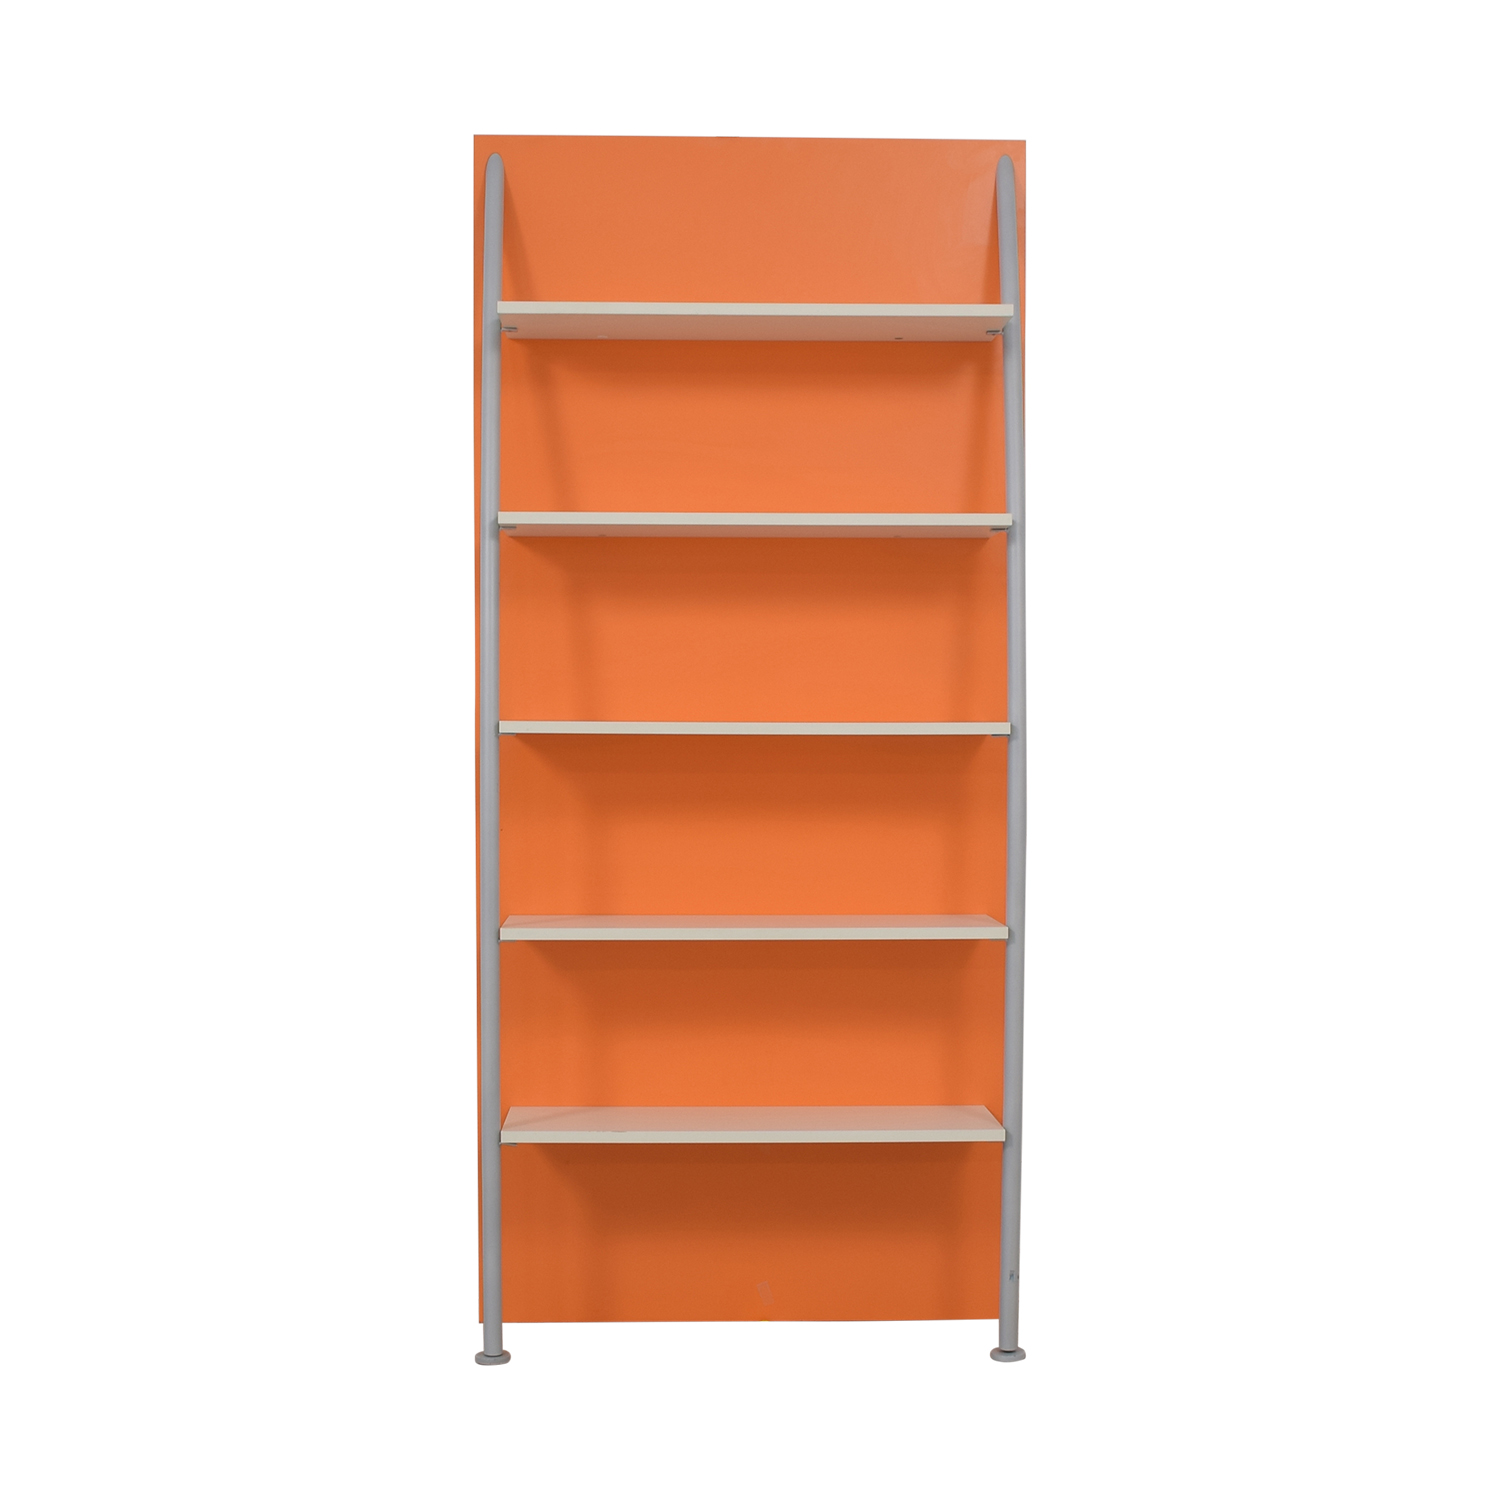 Five Shelf Bookcase dimensions